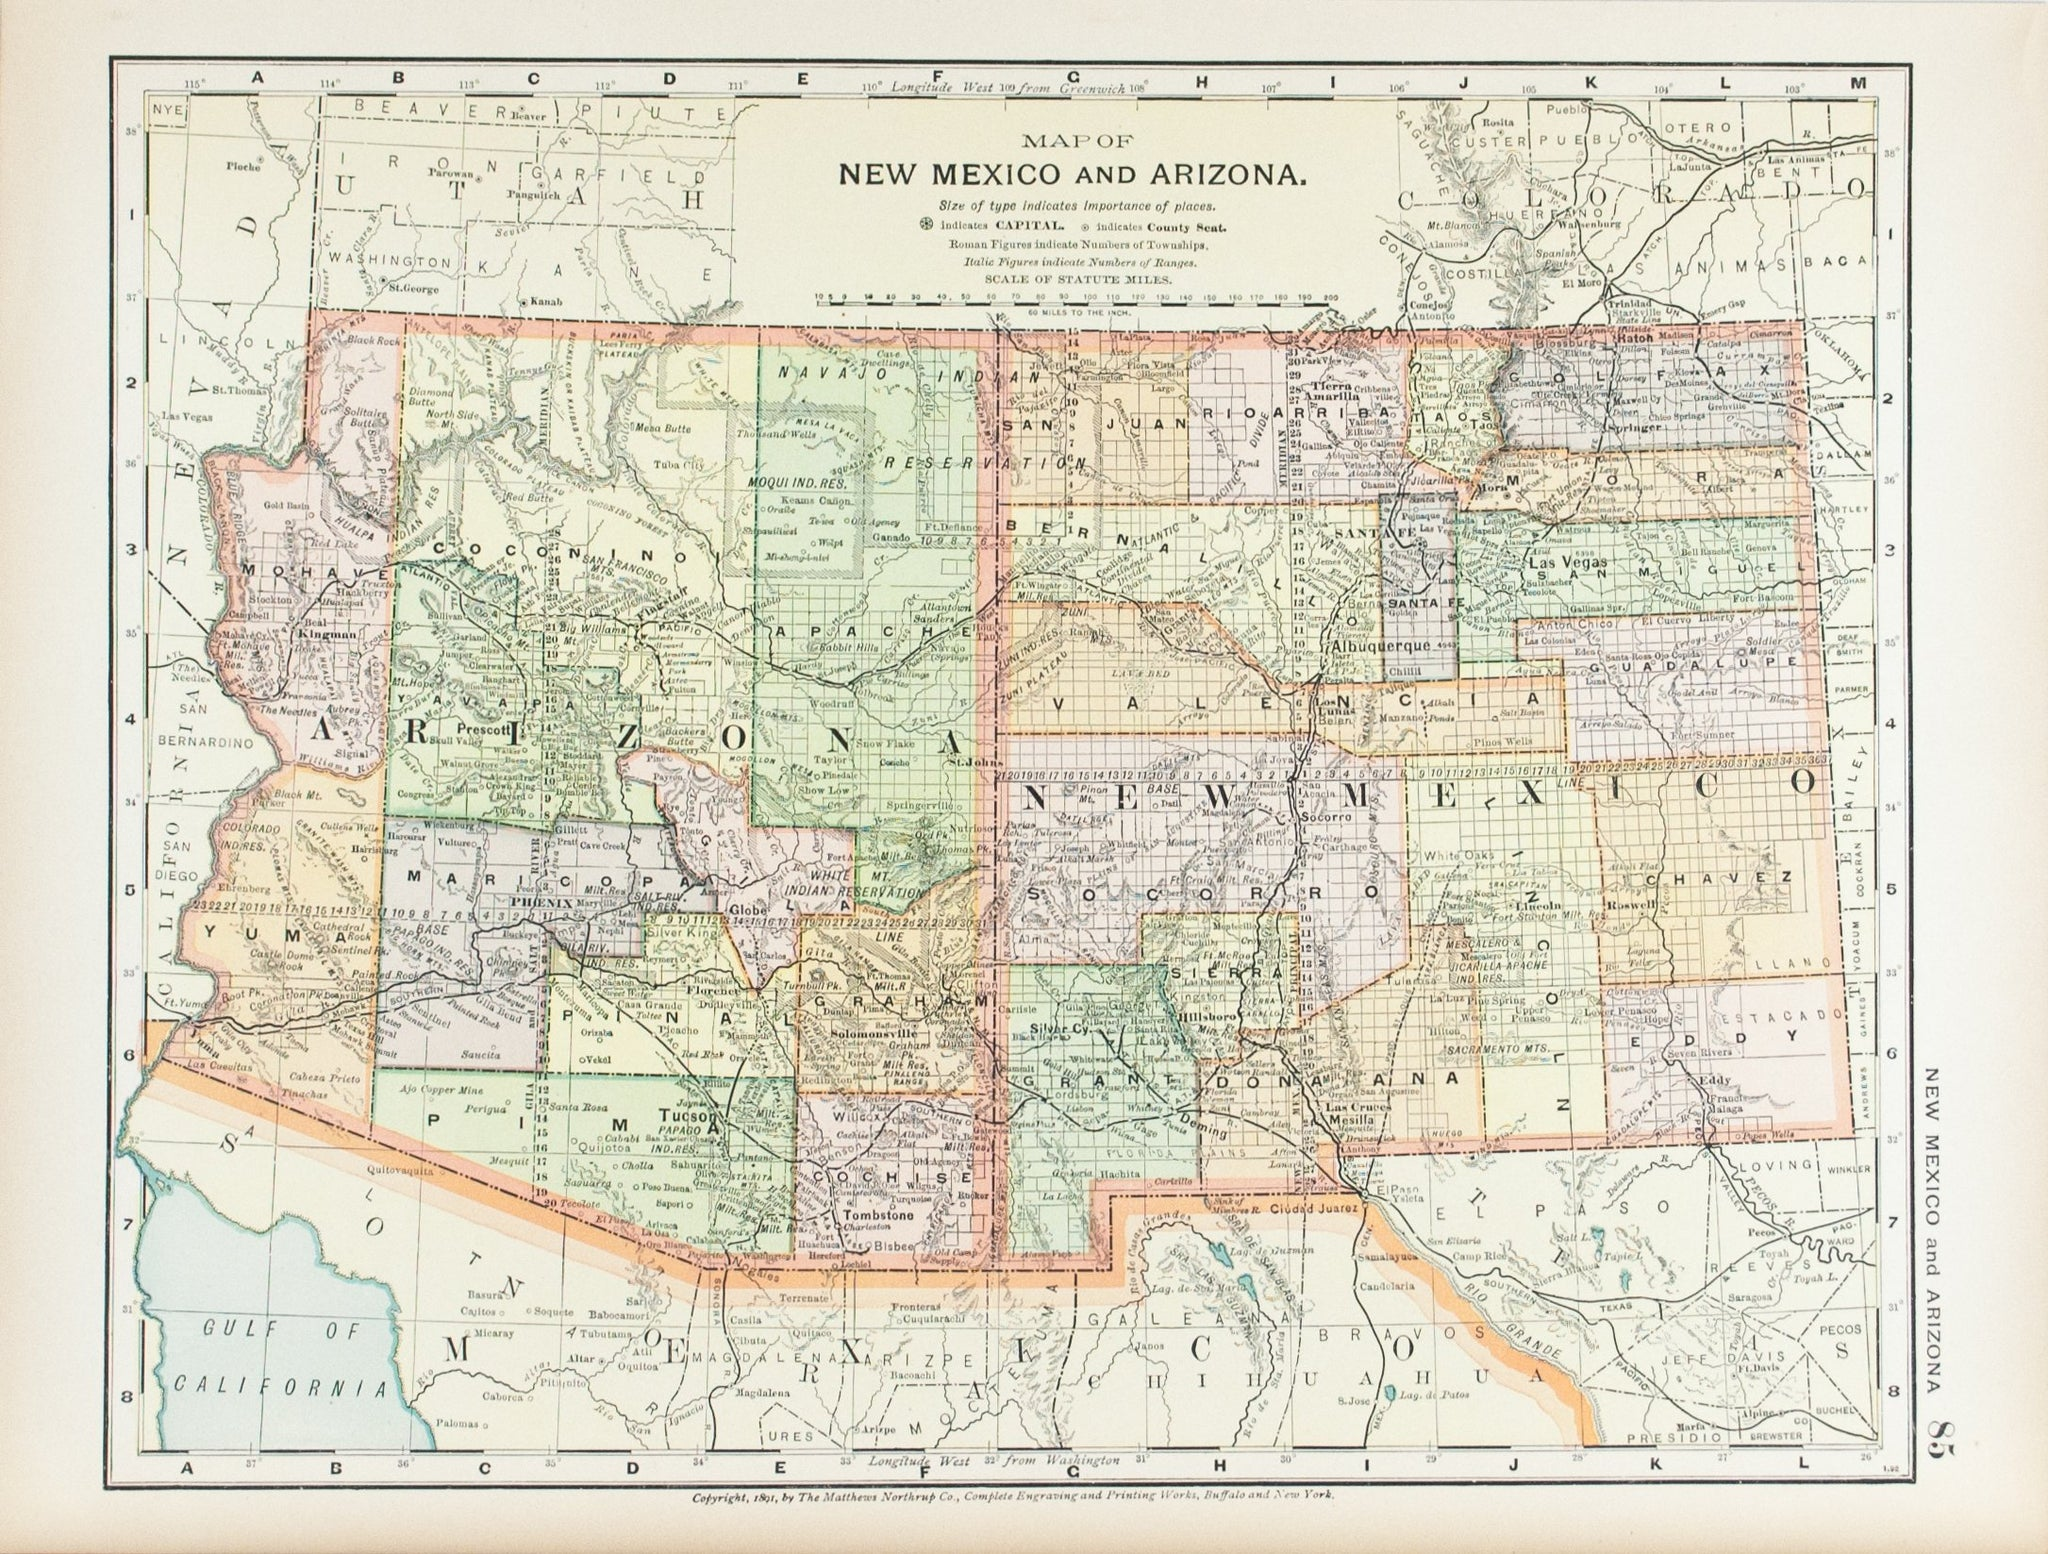 1891 Map of New Mexico and Arizona